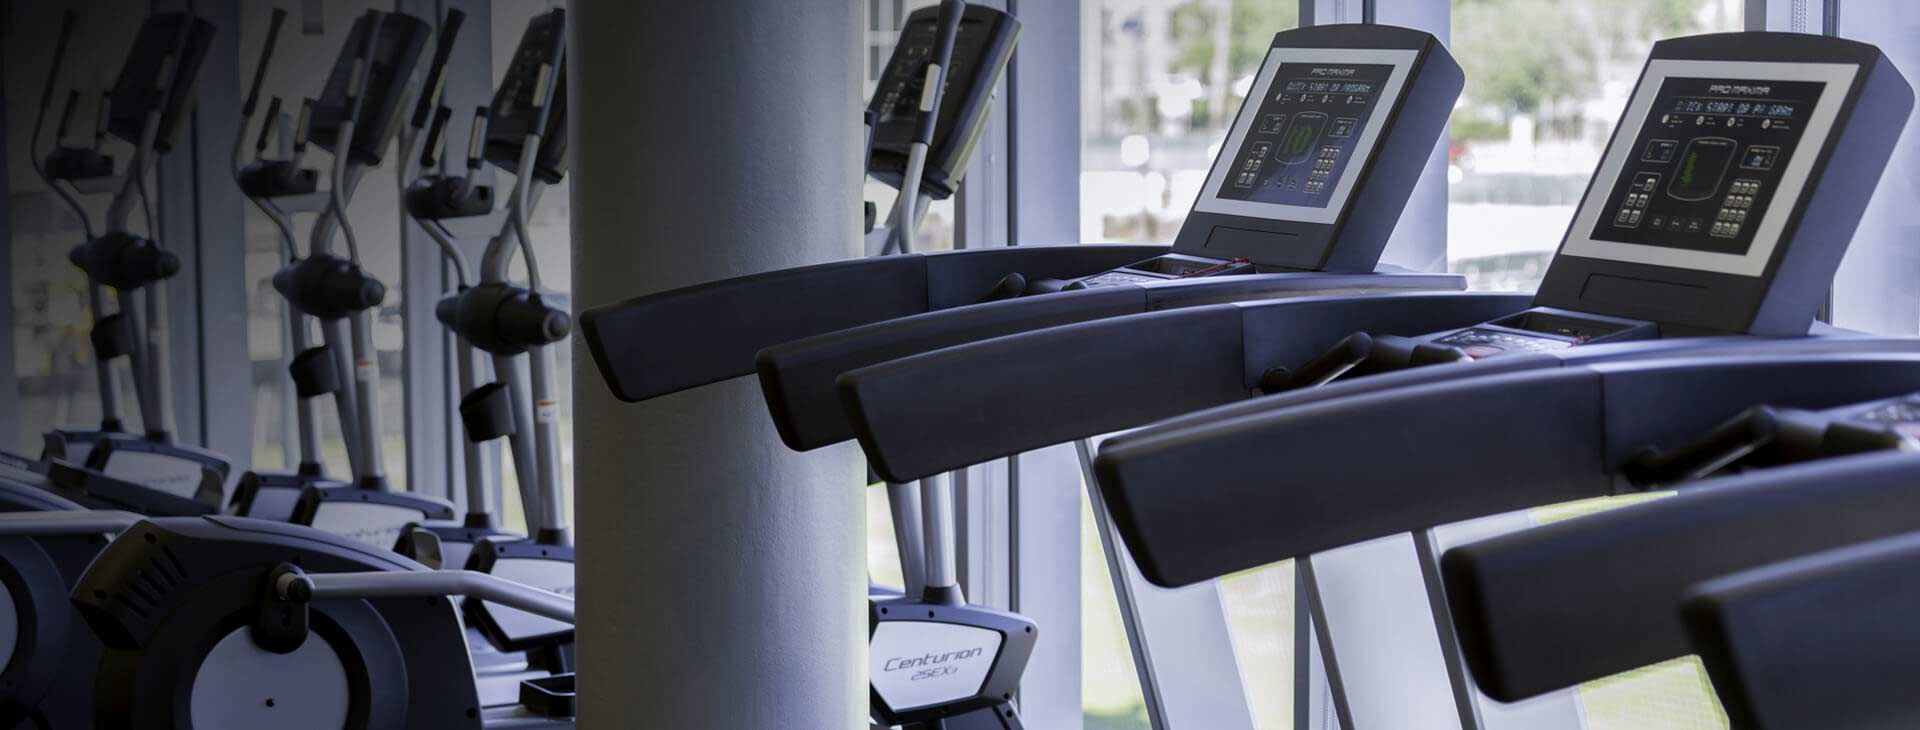 Fitness solutions for every space